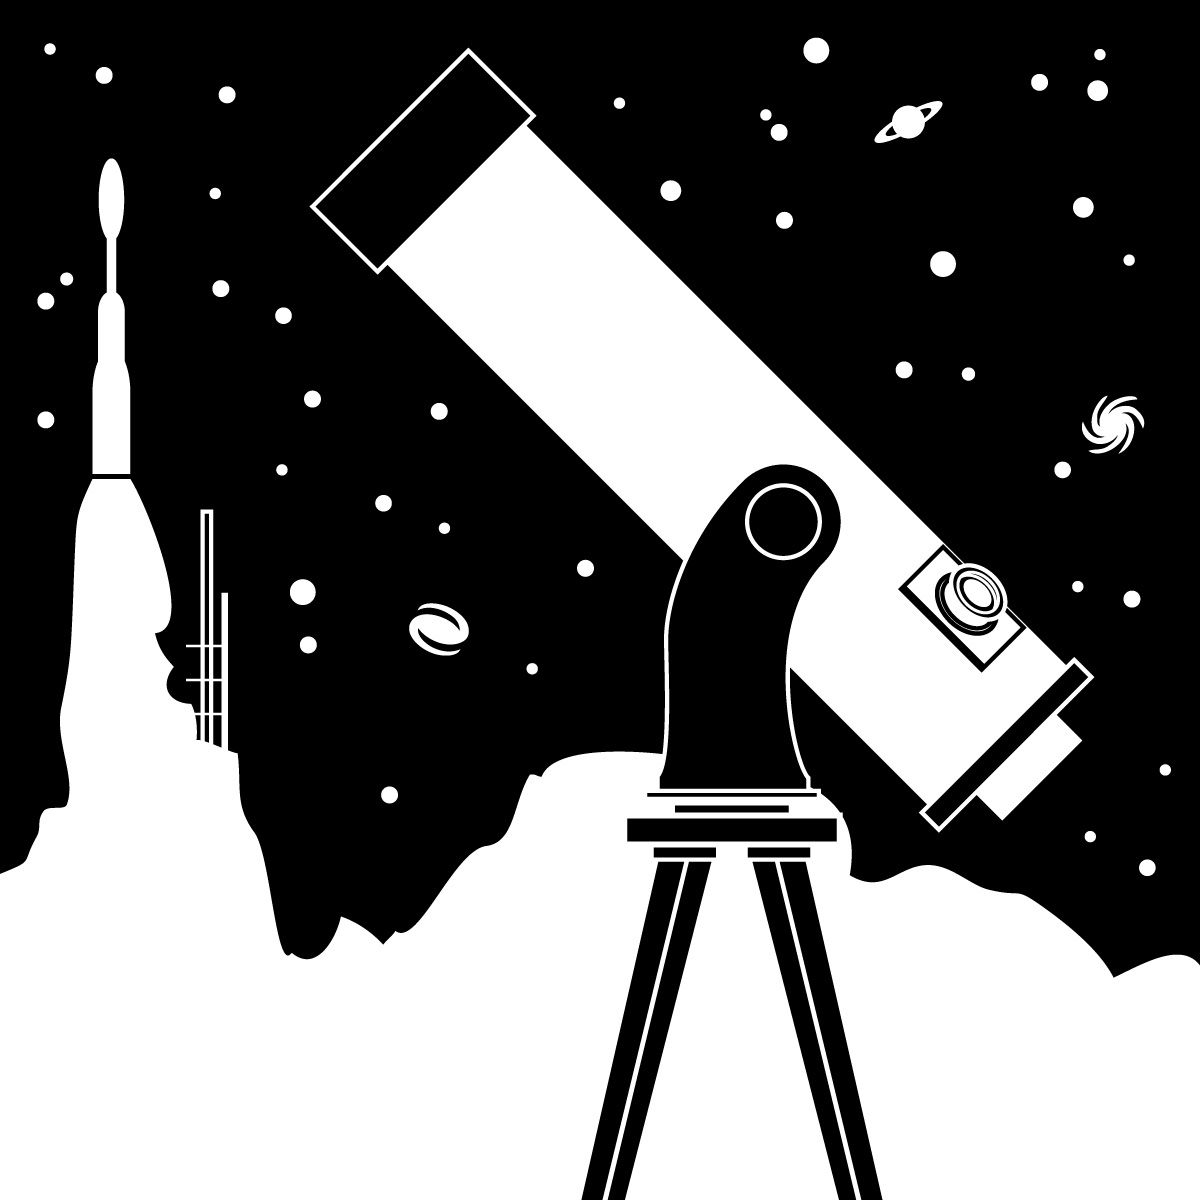 Science pinterest wacky holidays. Astronomy clipart black and white